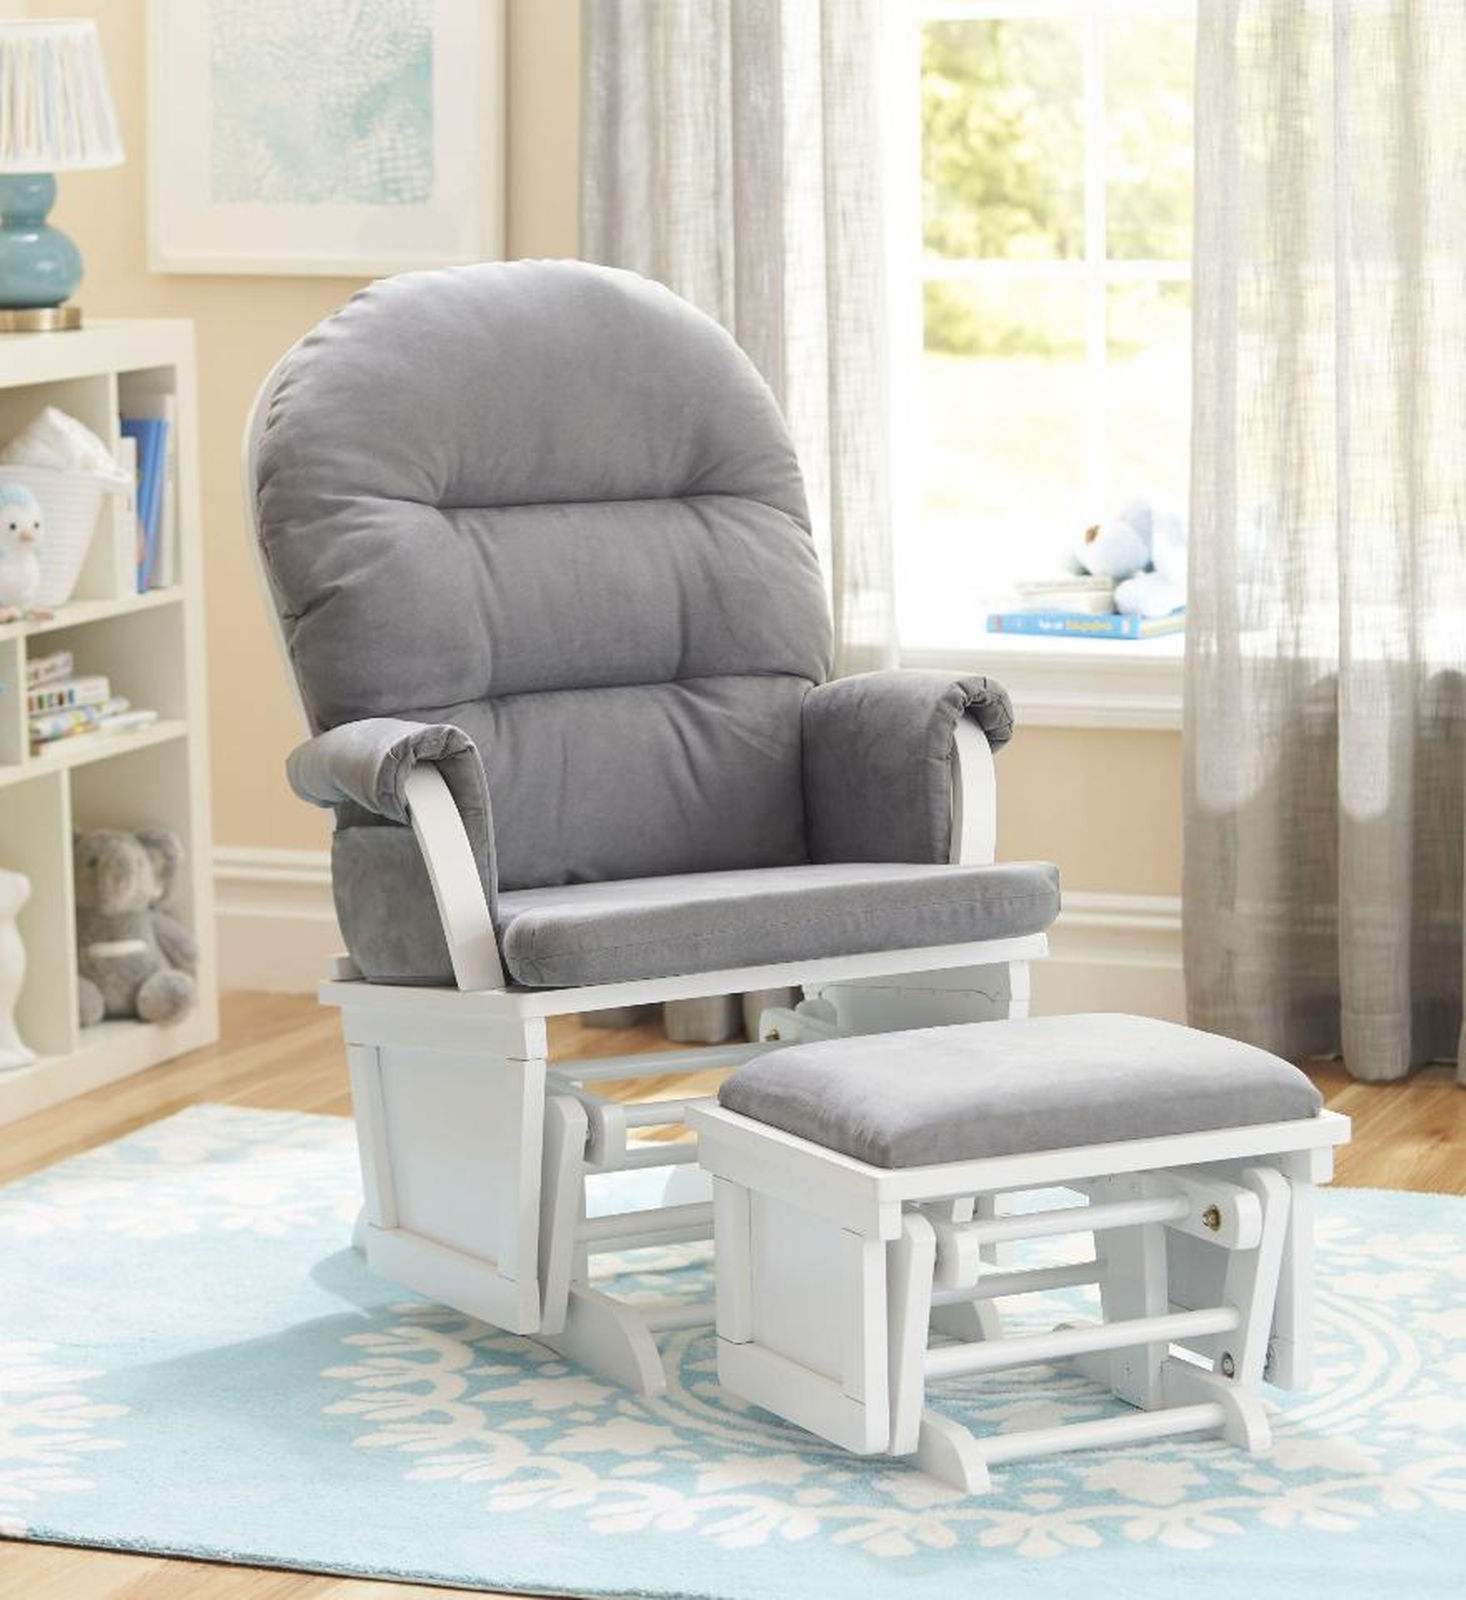 Baby Nursery: Nice Rocking Chair For Baby Nursery Ideas Babies R Us Within Rocking Chairs For Baby Room (View 9 of 15)